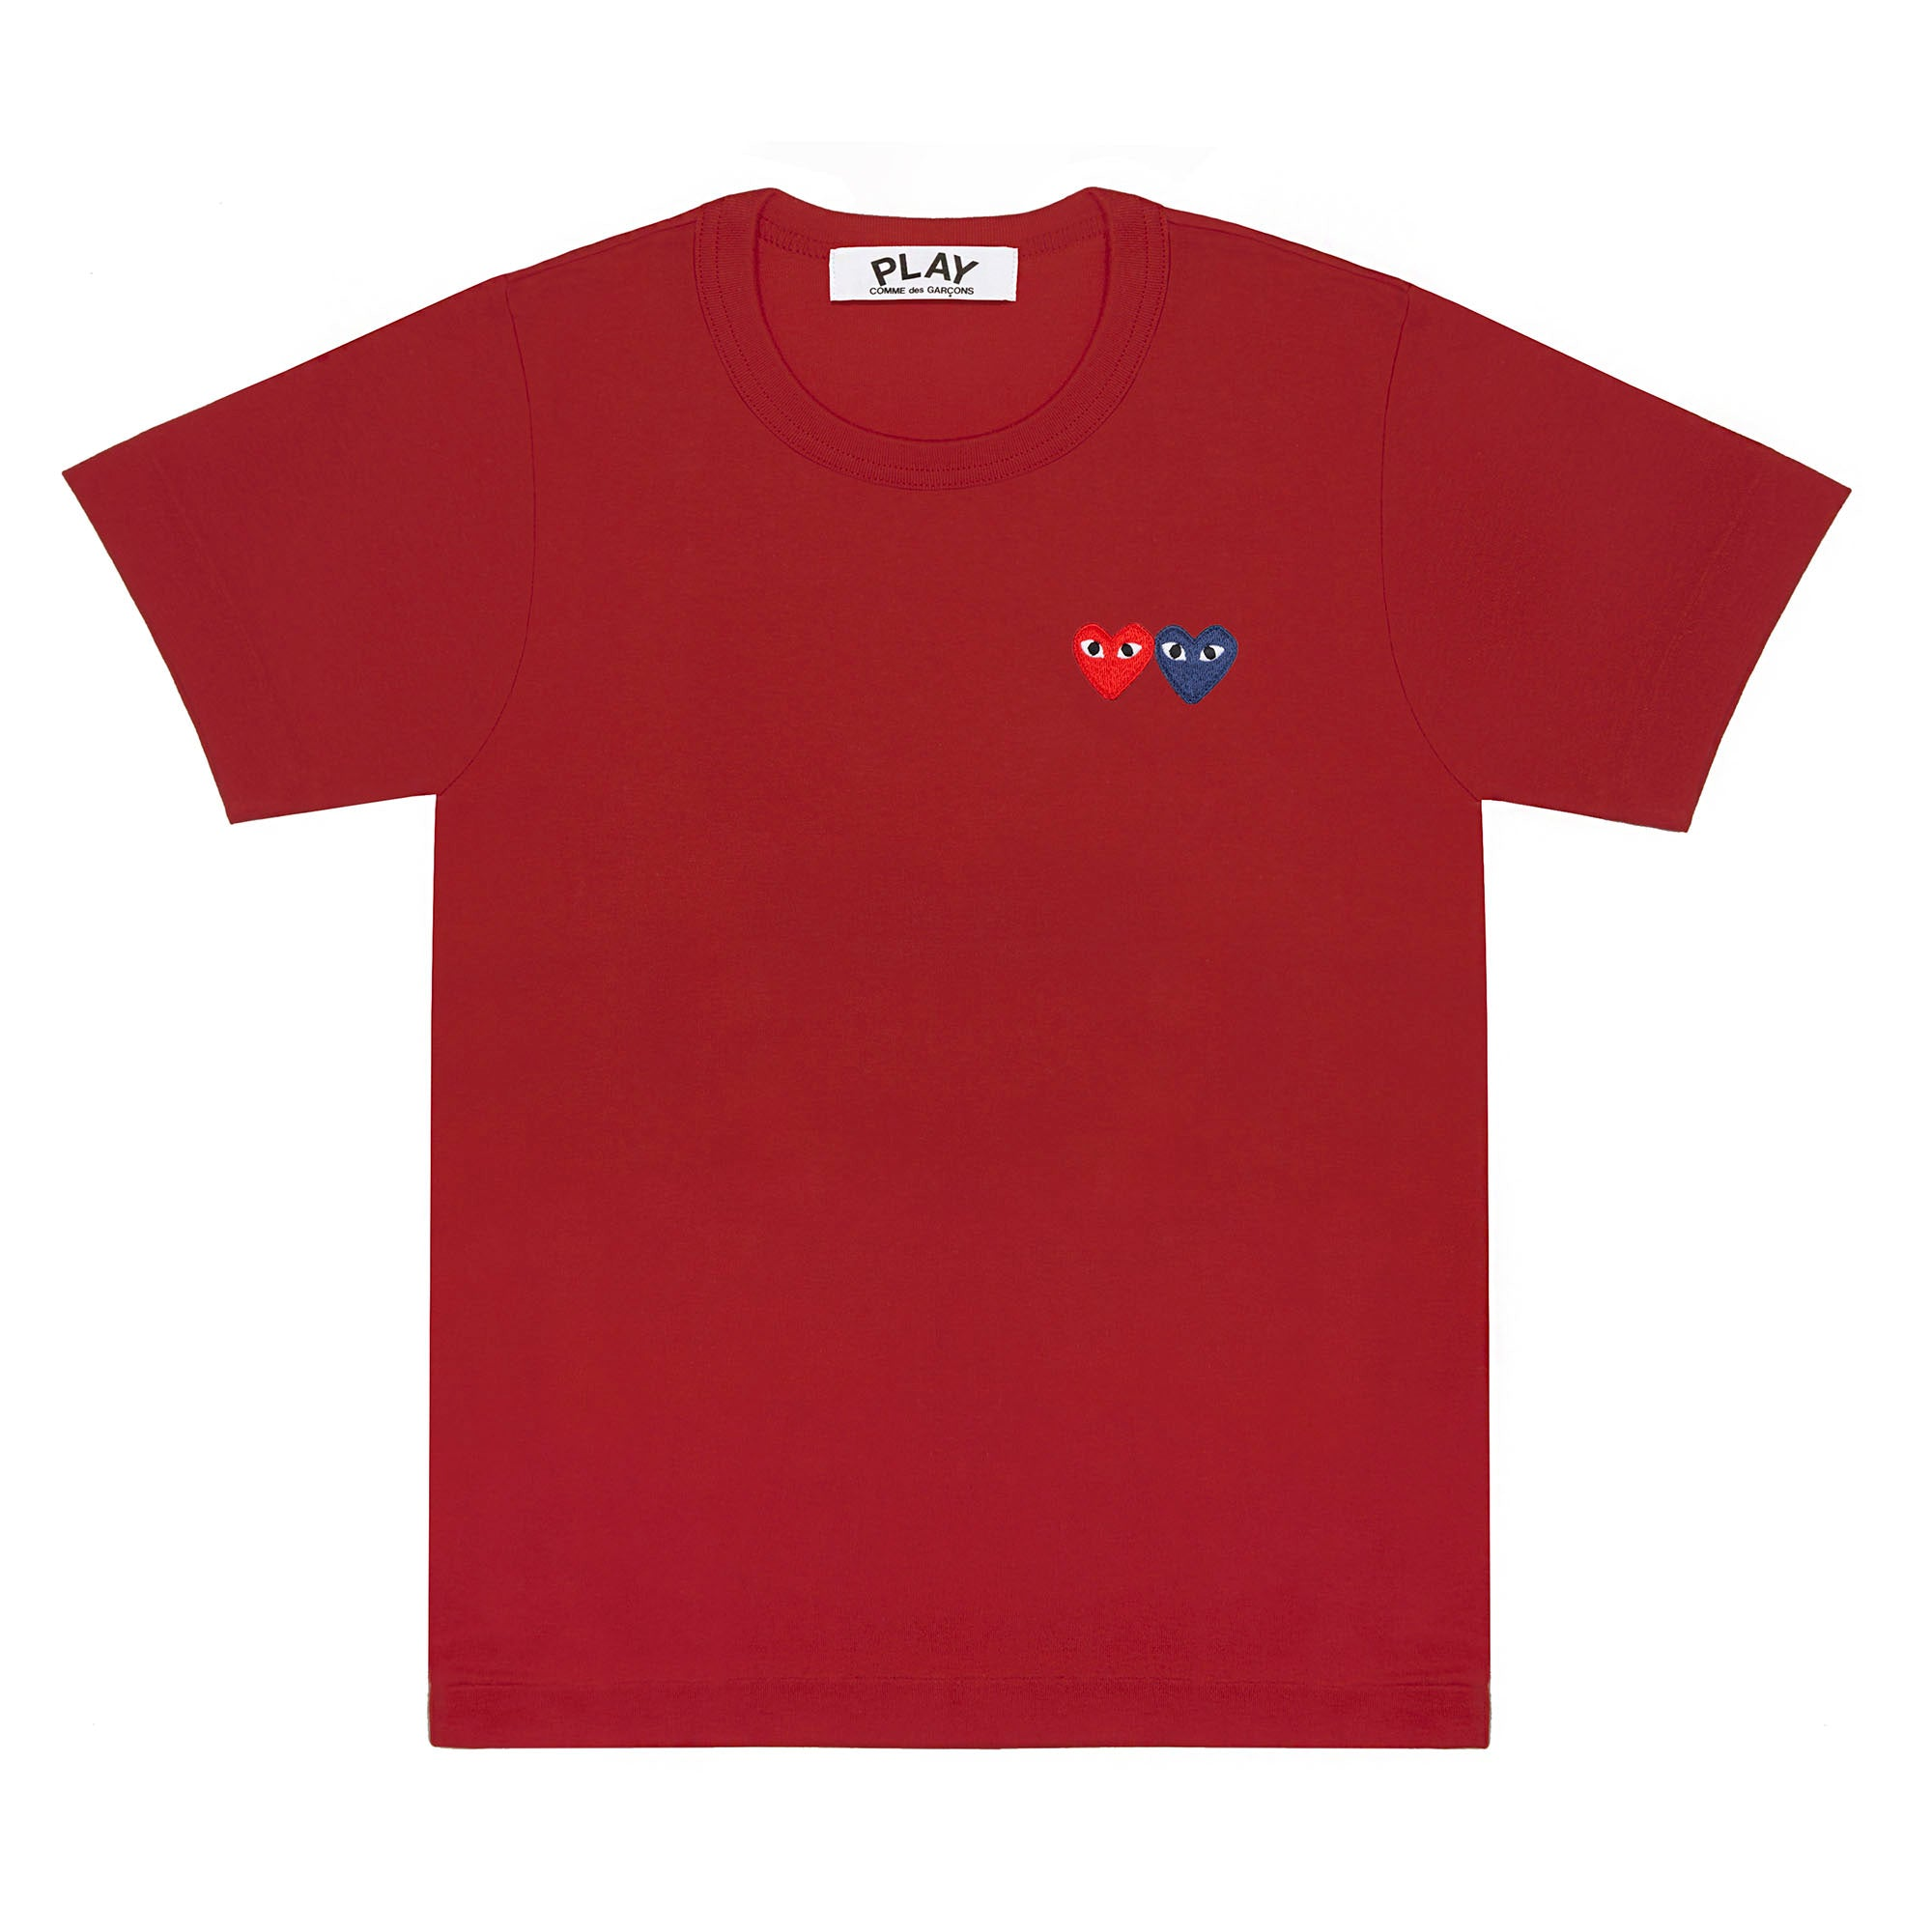 Play T-Shirt with Double Heart (Burgundy)